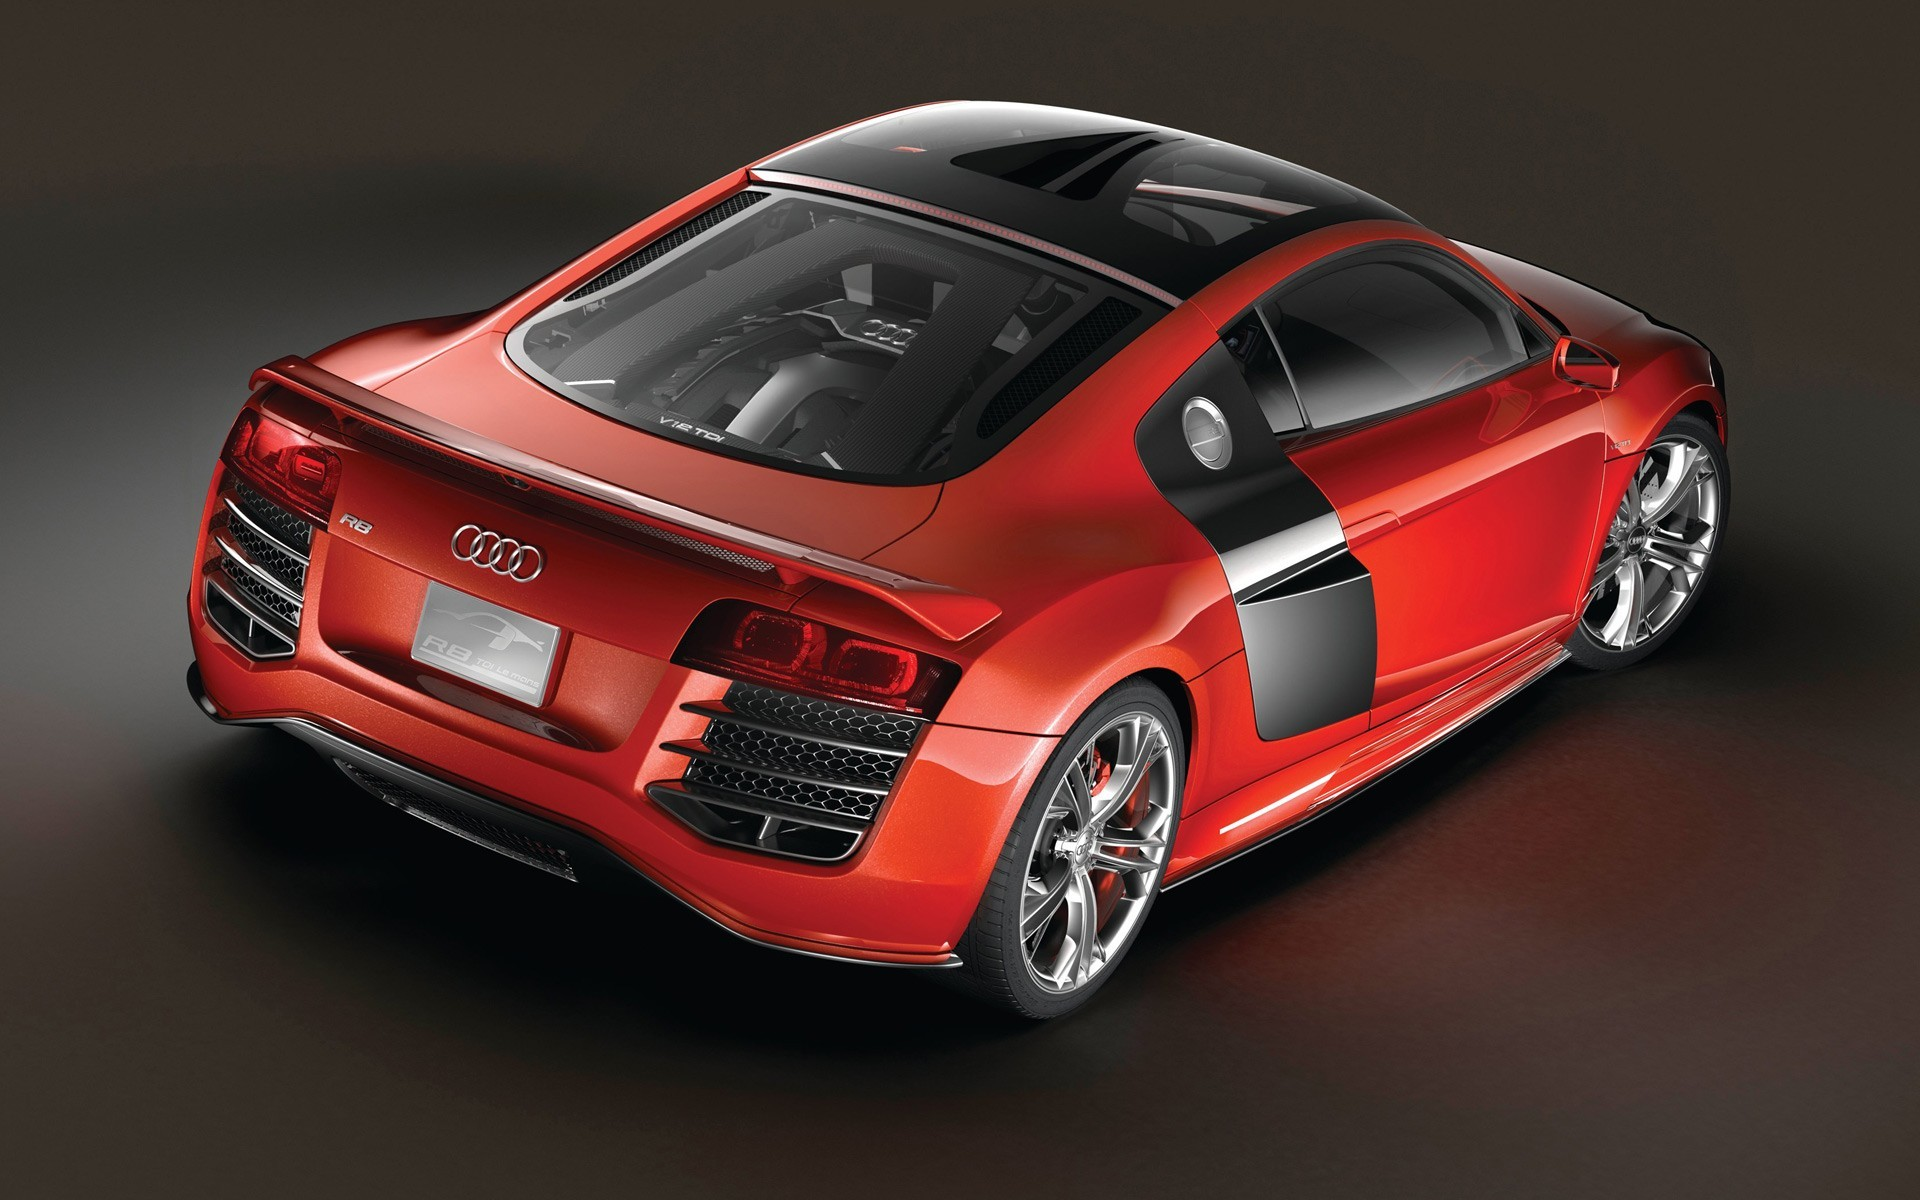 Audi audi r8 cars HD Wallpaper